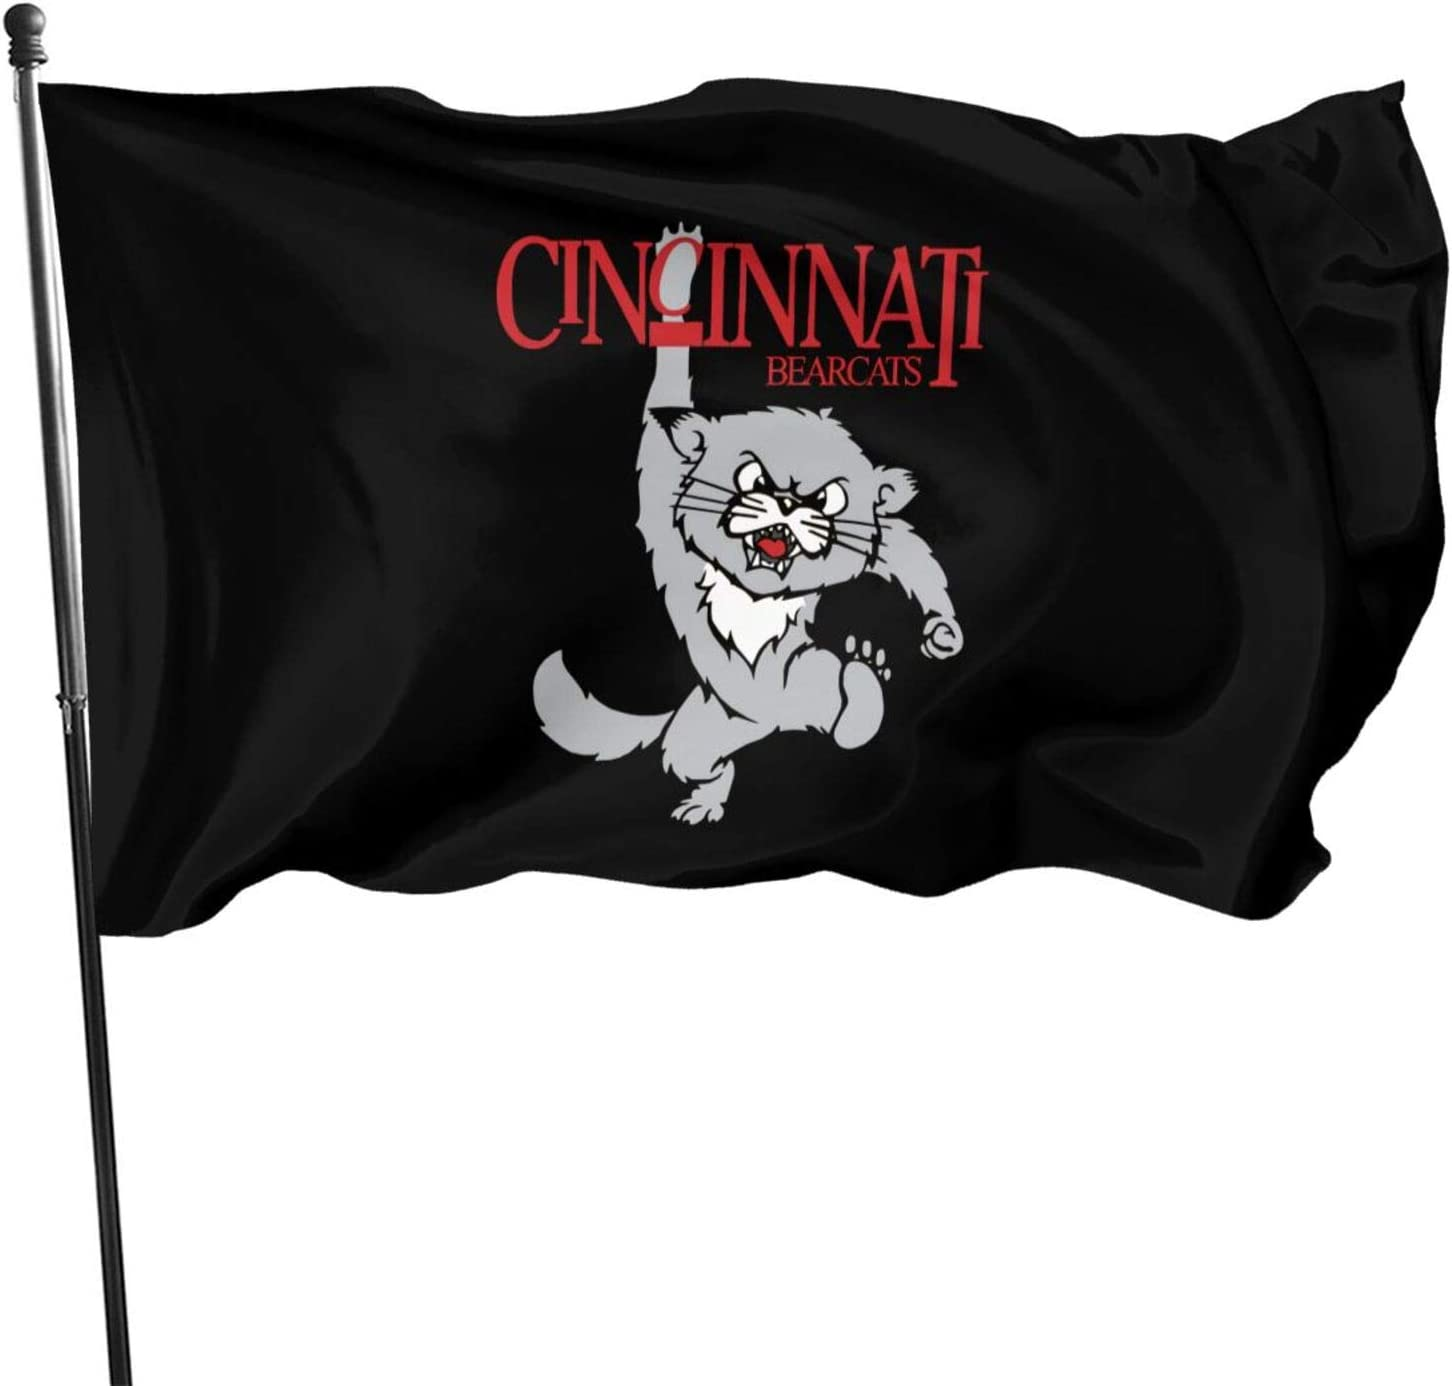 Guwafa8 CIN-CIN-NATI Bear-Cats Seasonal Garden Flag Set for Outdoors Easter Flag Banner 3x5 Feet